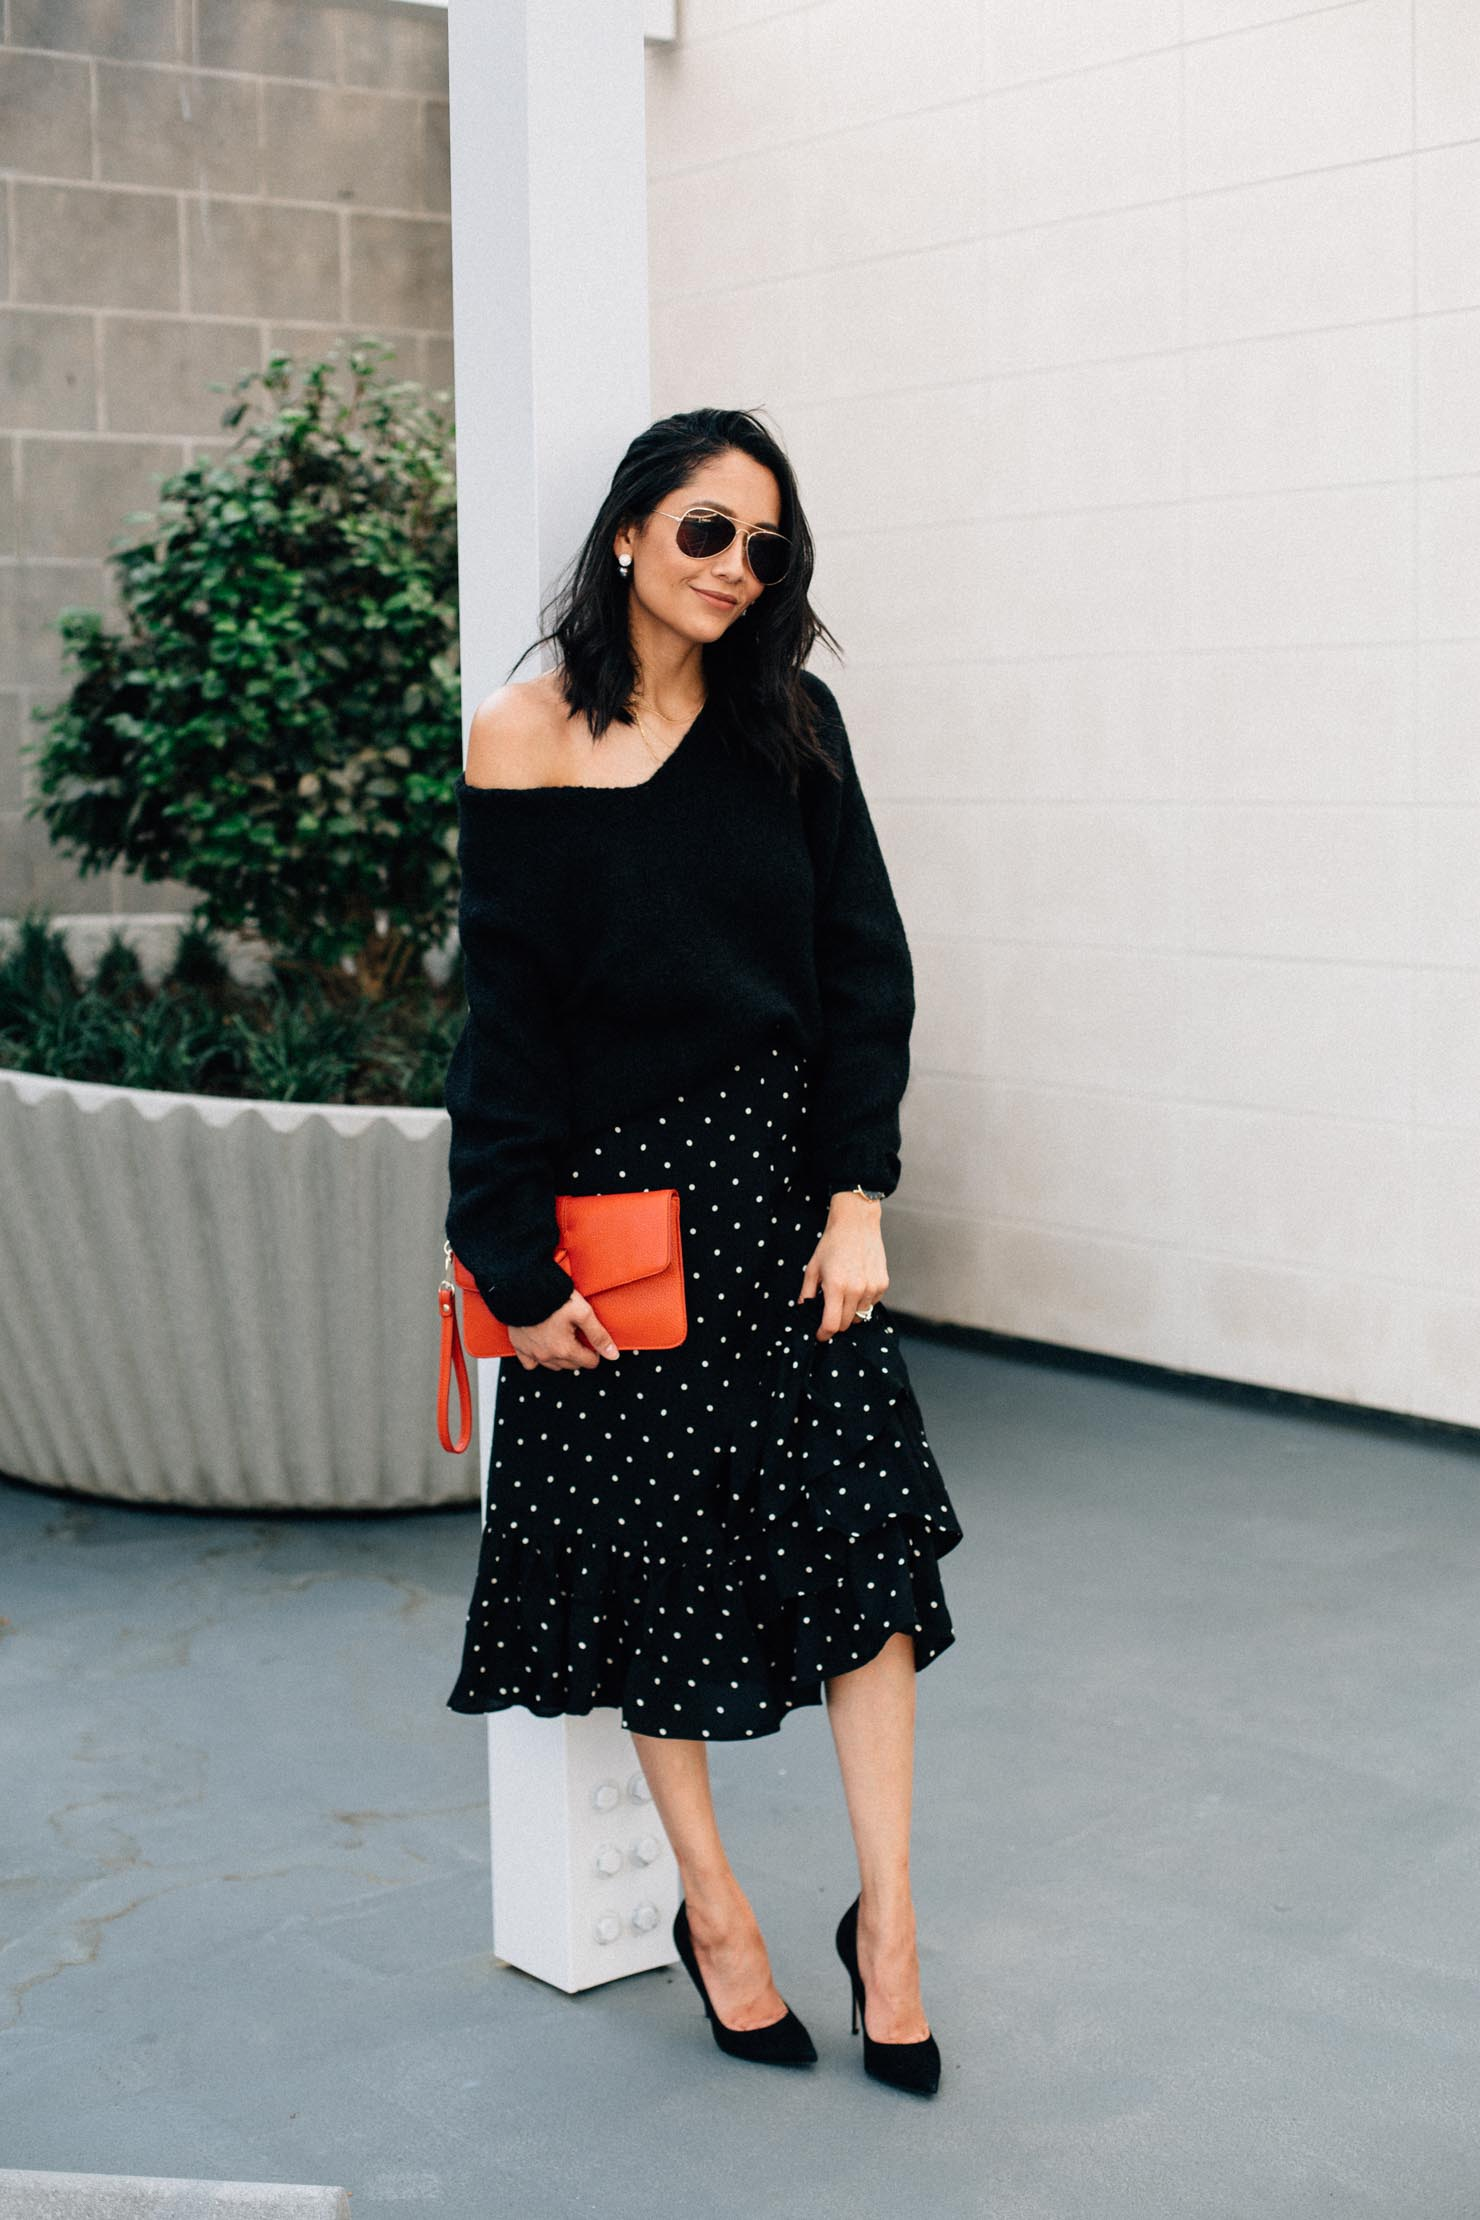 Thanksgiving outfit idea from fashion blogger Lilly Beltran with a black polka dot midi skirt, black chunky sweater & red clutch